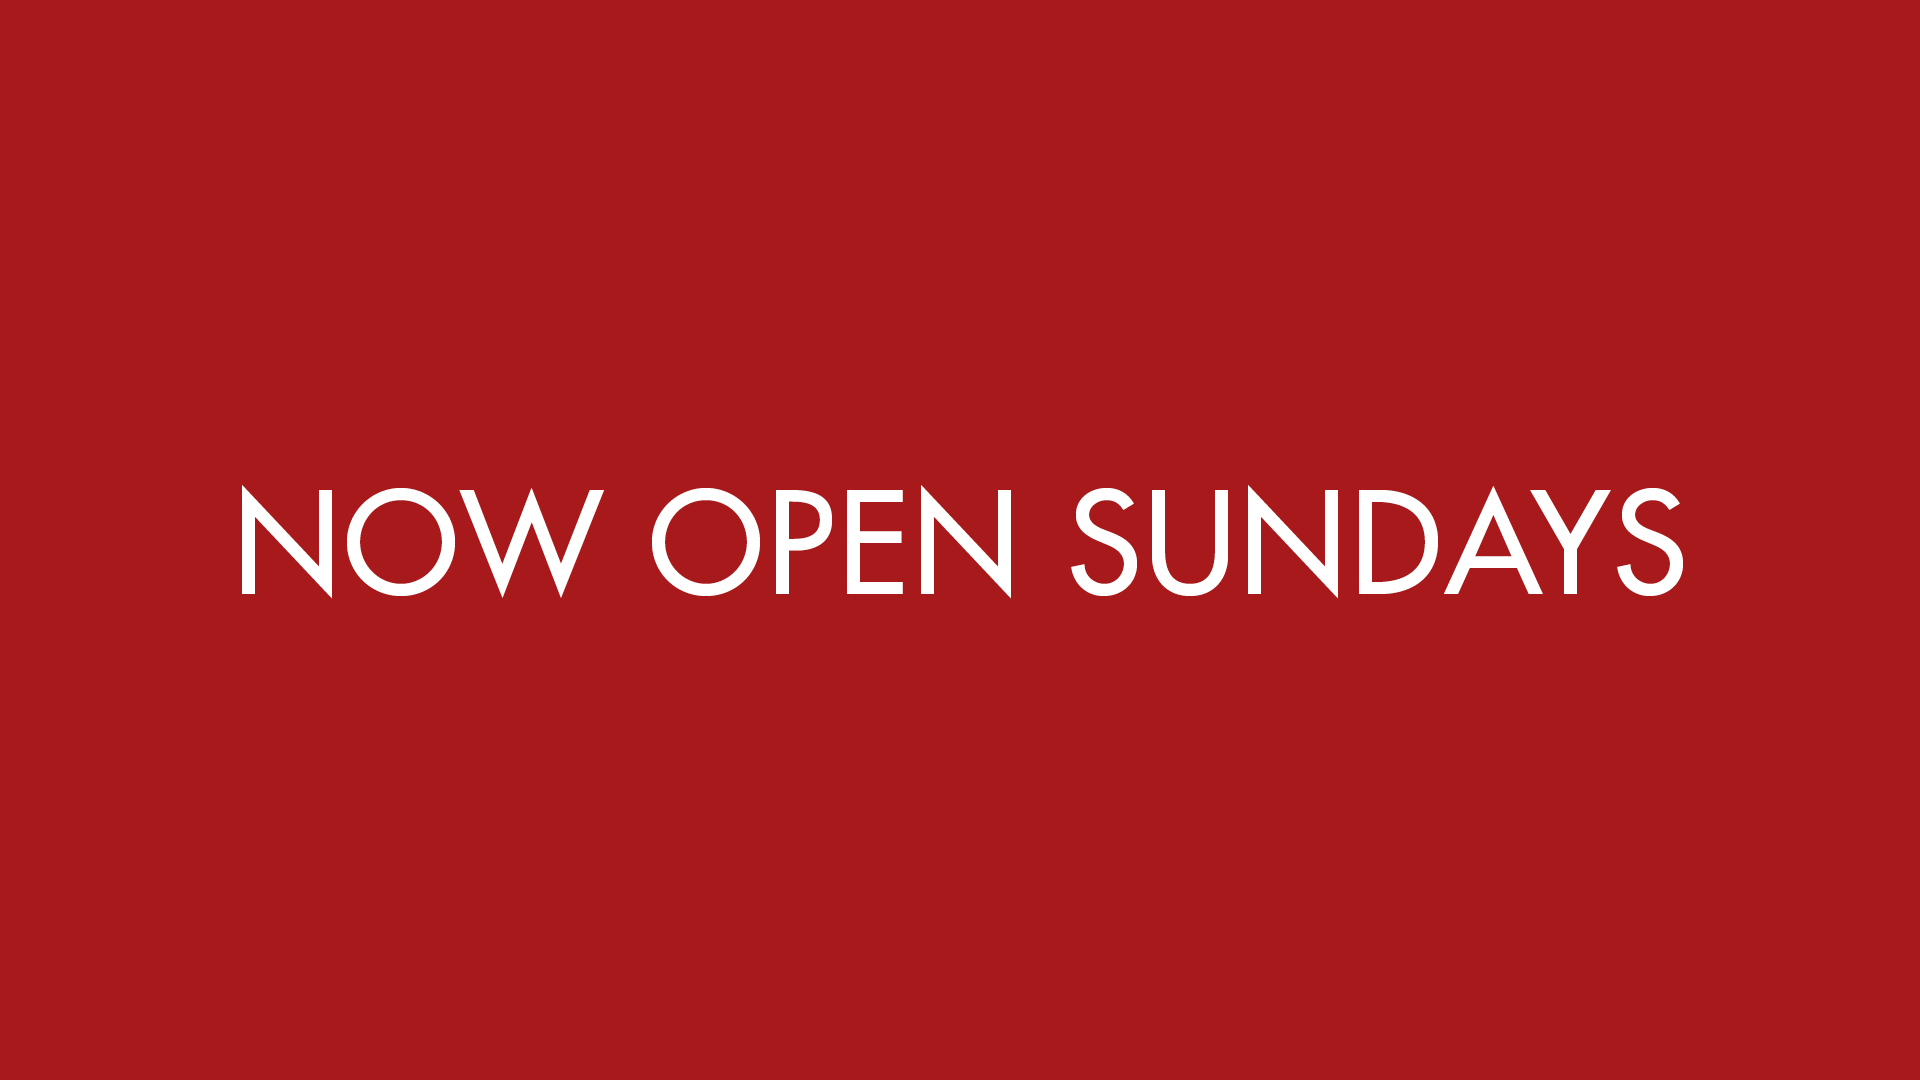 Now Open Sundays